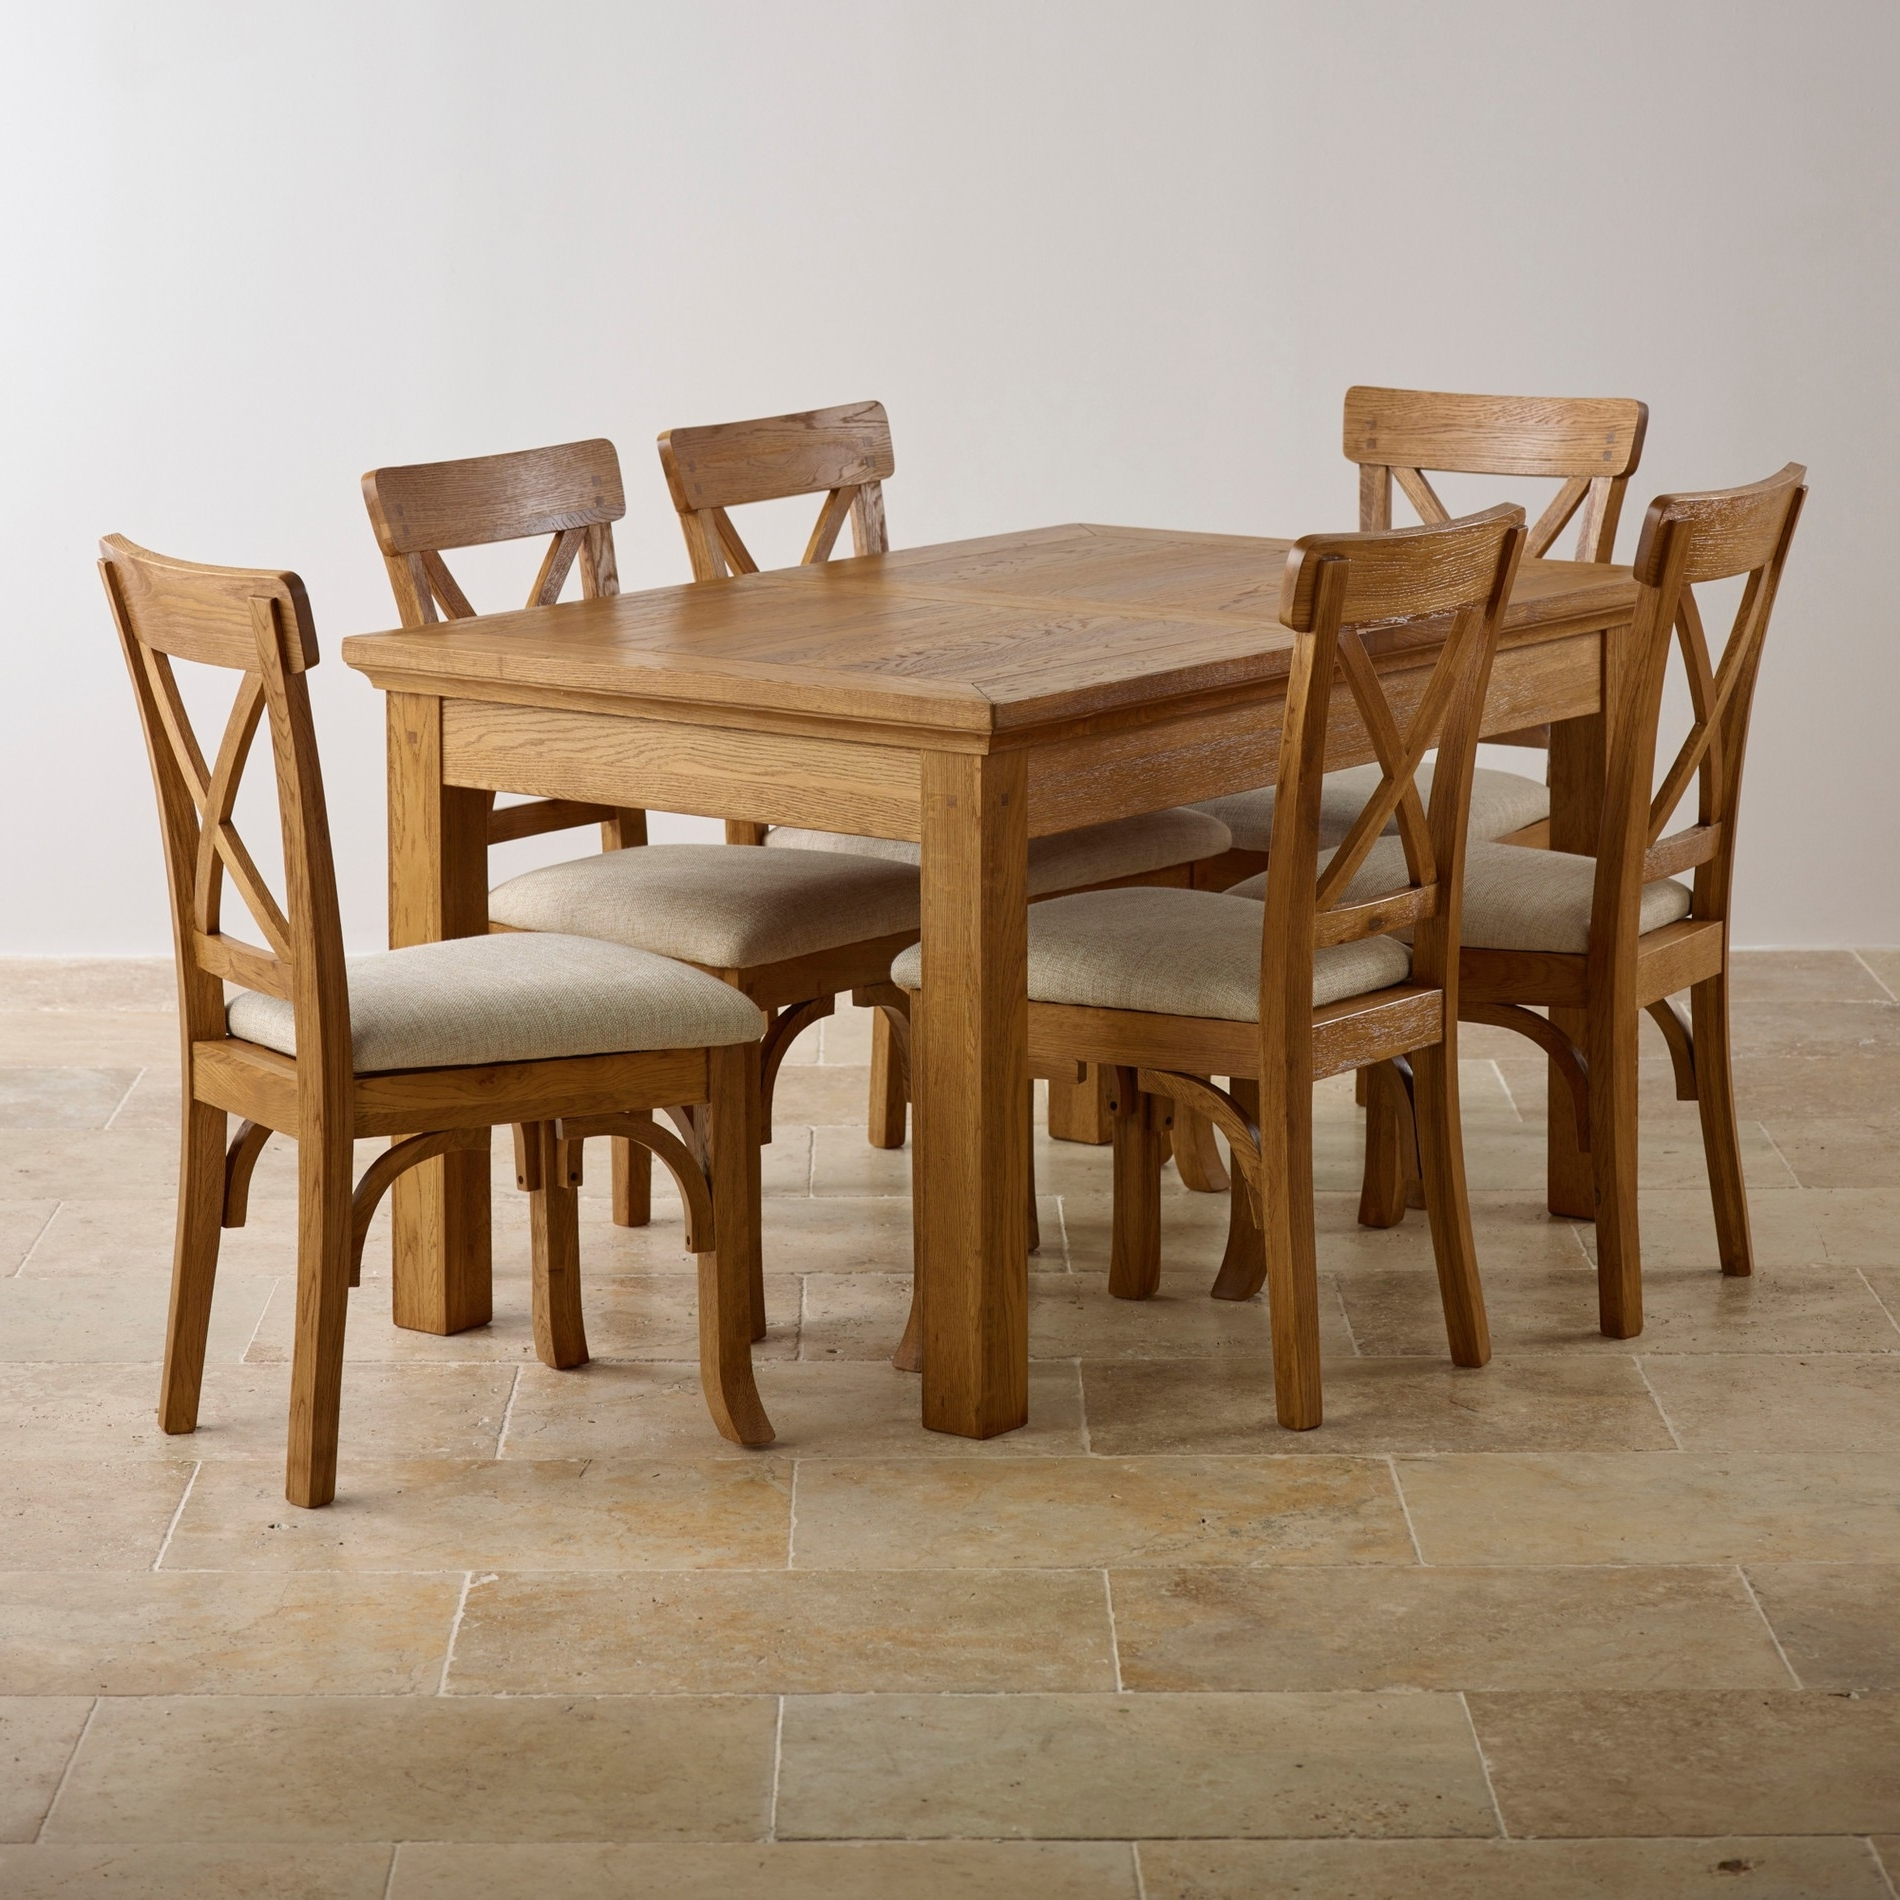 Recent The 28 Awesome 6 Seater Extendable Dining Table – Welovedandelion Throughout Extendable Dining Tables 6 Chairs (View 24 of 25)